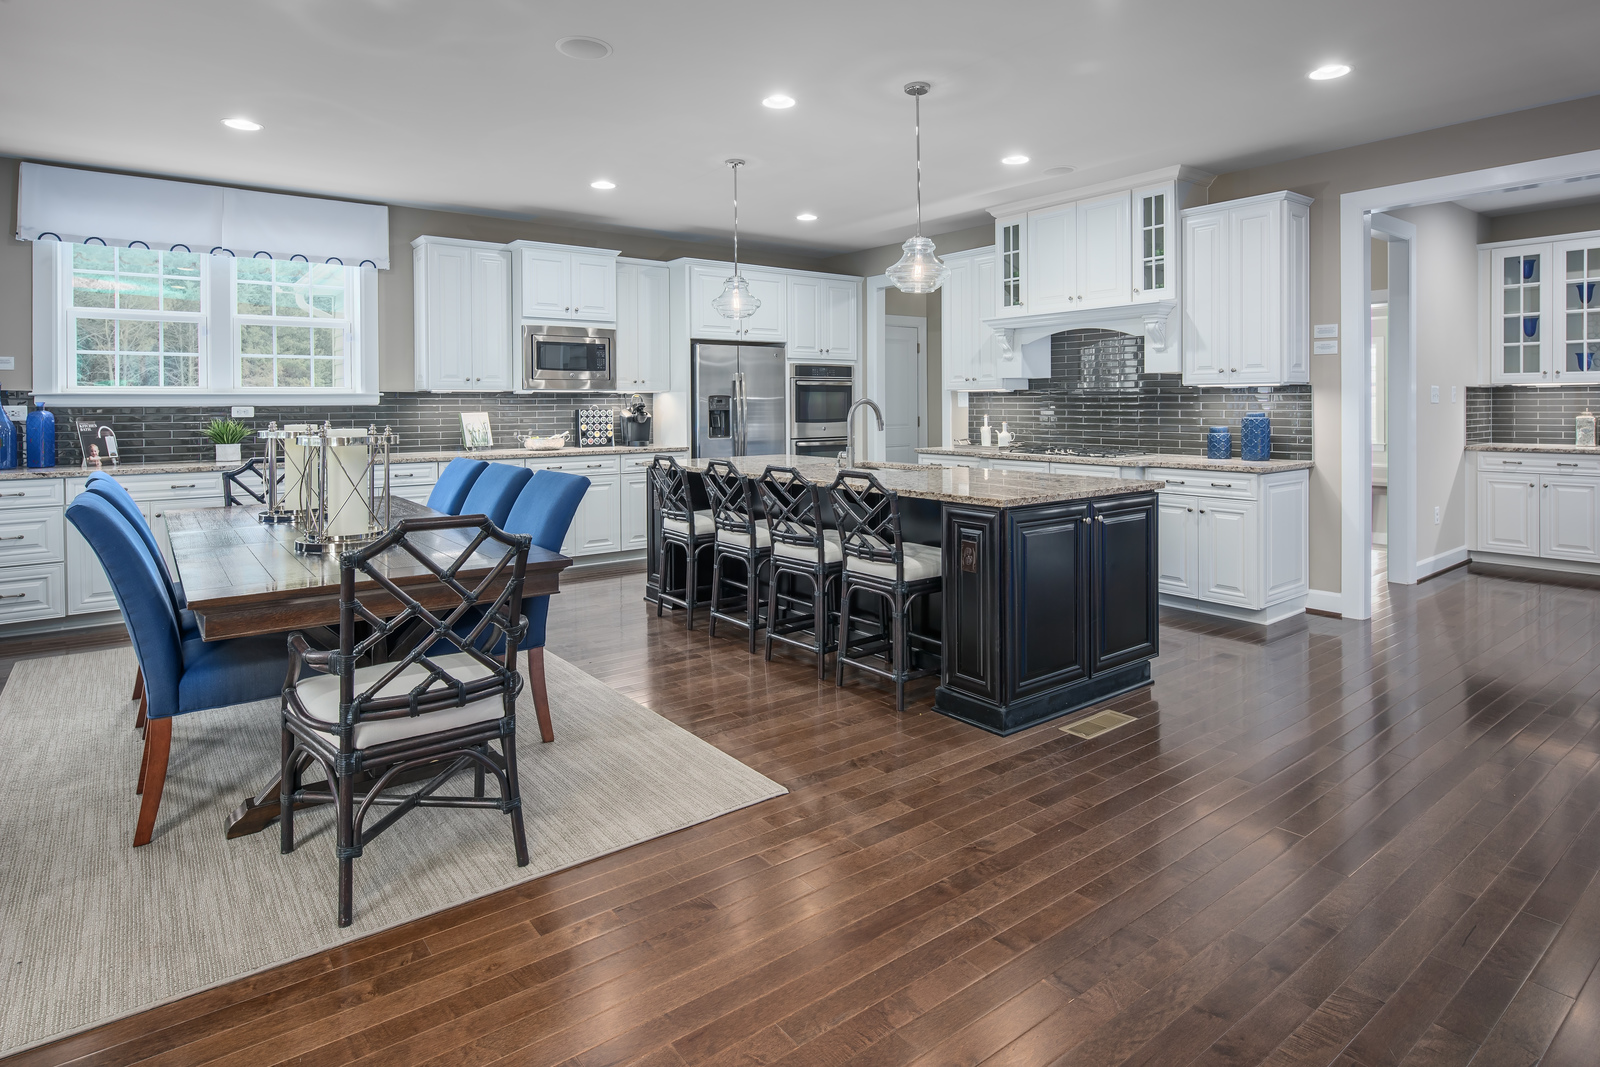 Expansive Kitchens are perfect for hosting family gatherings with the included double wall oven, Chef's hood, and stainless steel appliances